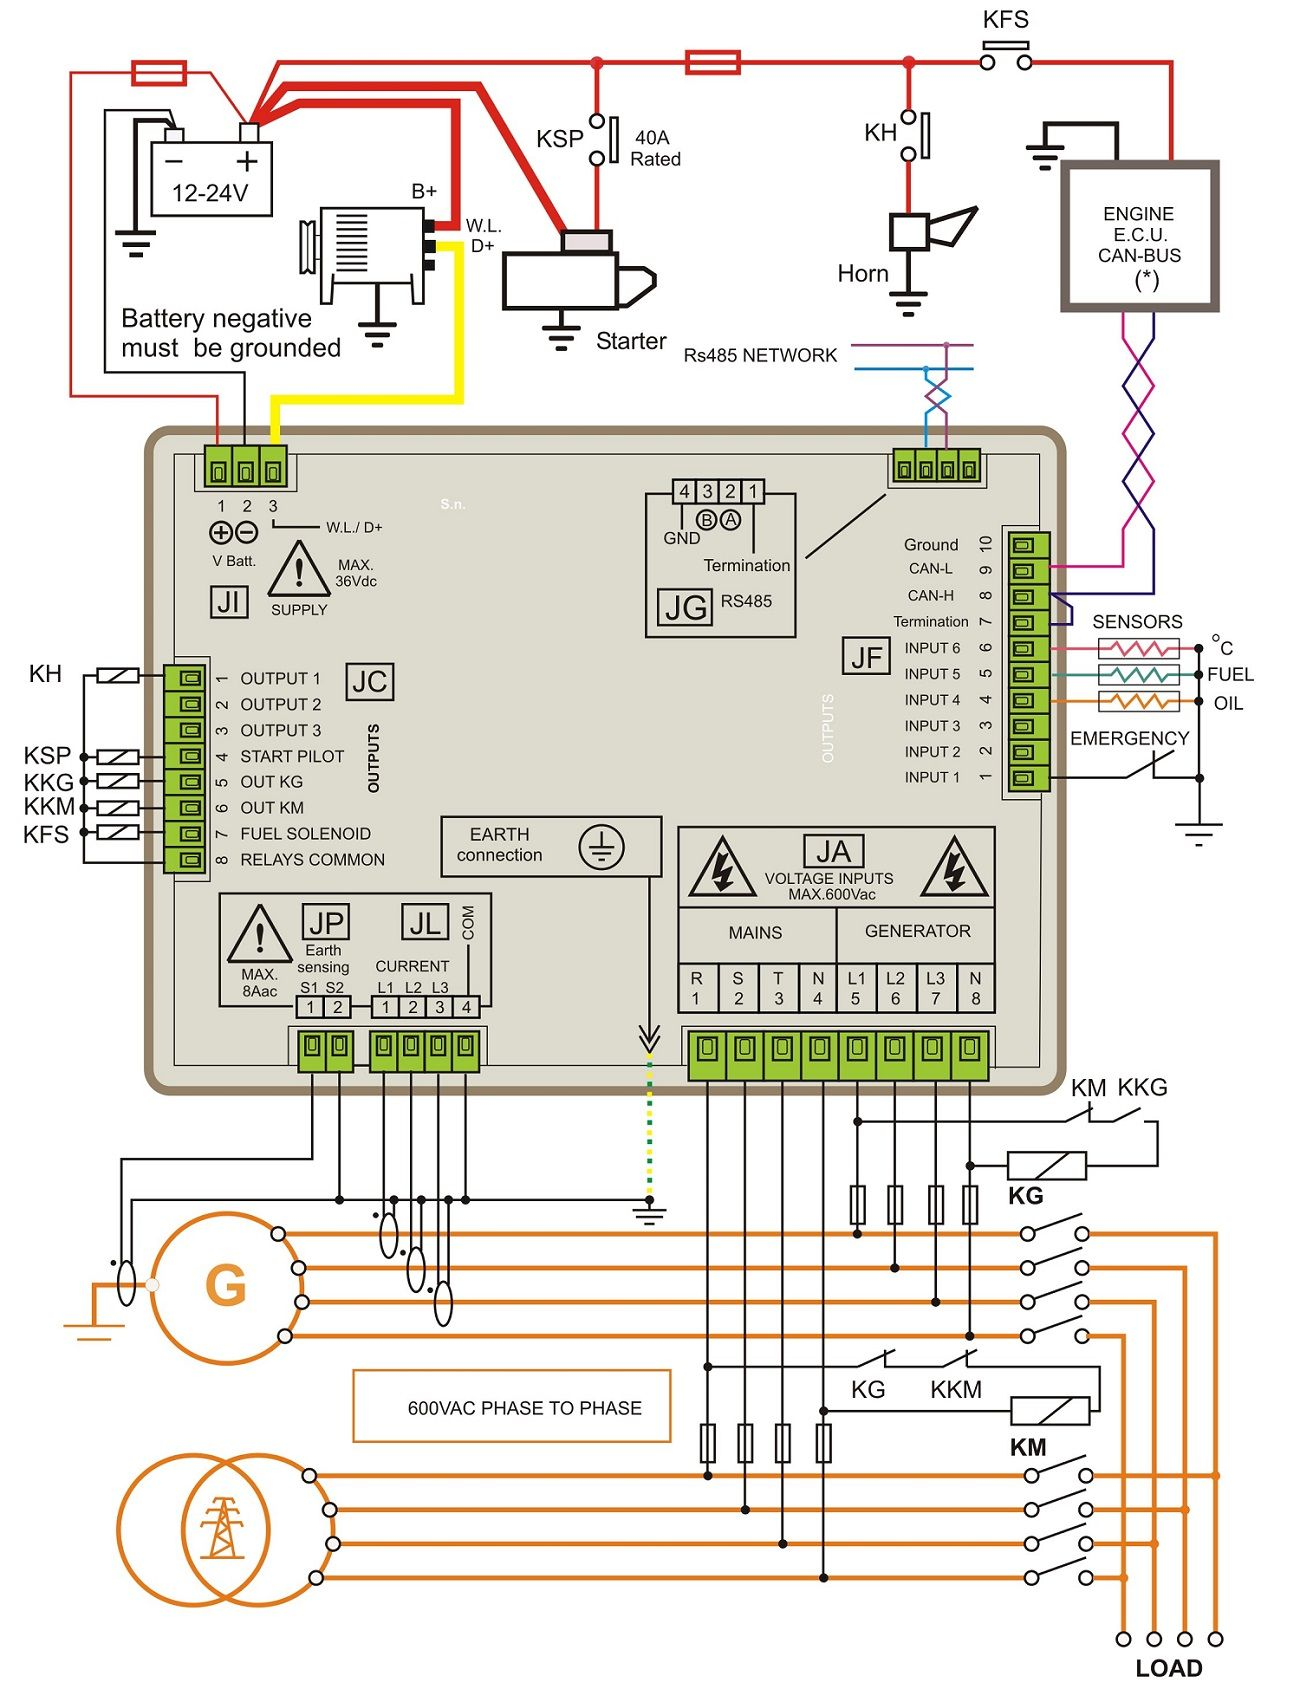 15c254873b870a838ee6709417678490 generator control panel for industrial applications diagram jpg automatic transfer switch wiring diagram free at edmiracle.co